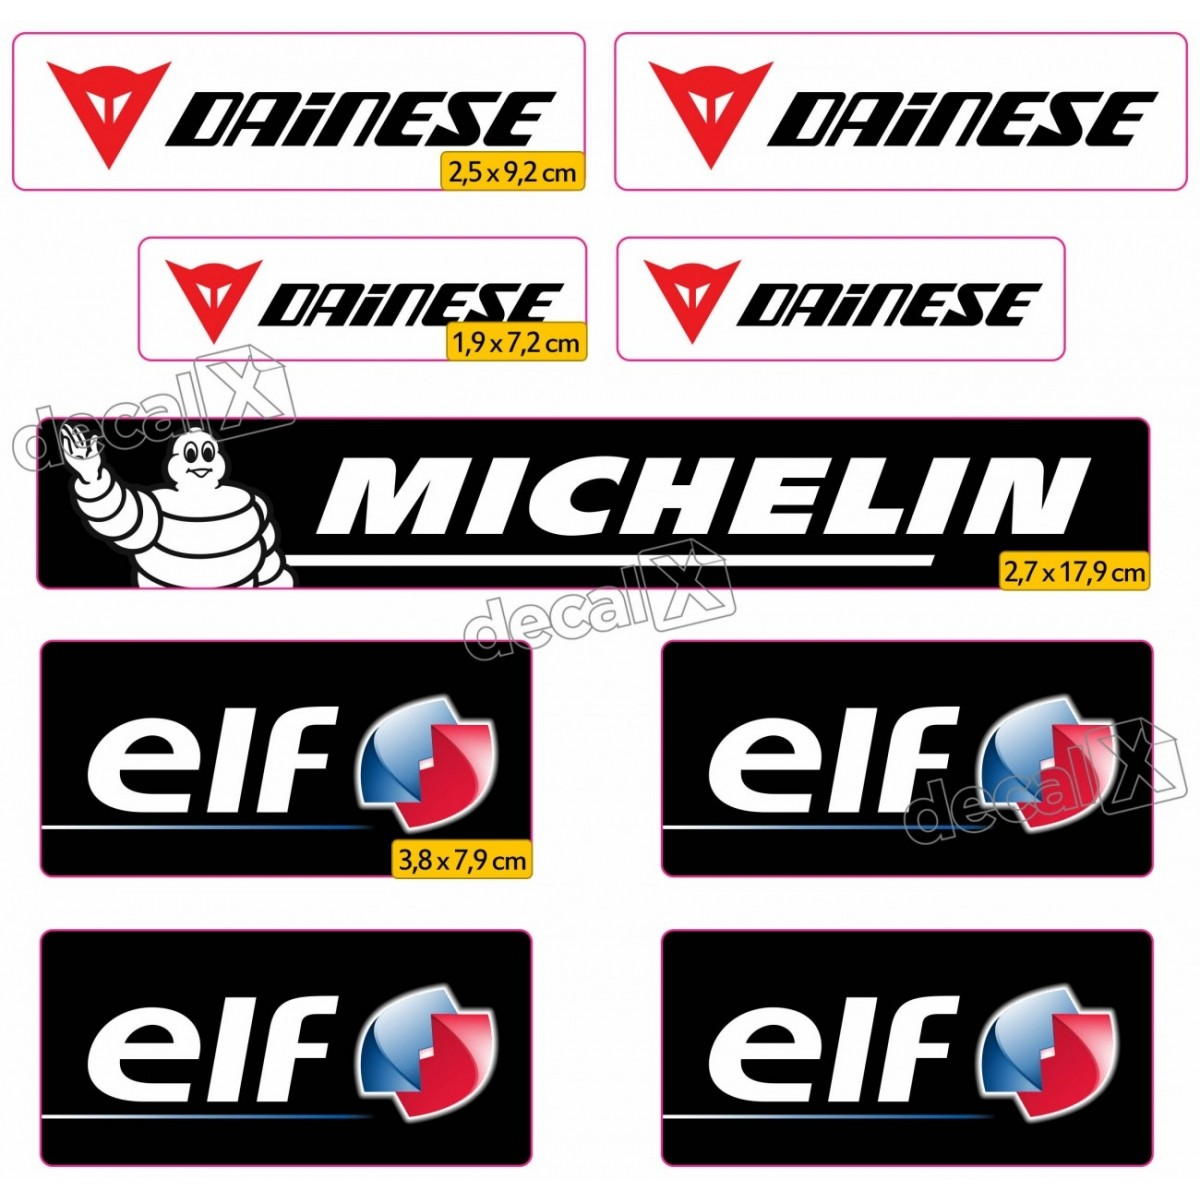 Kit Adesivos Capacete Dainese Michelin Elf Refetivo Ktcp44